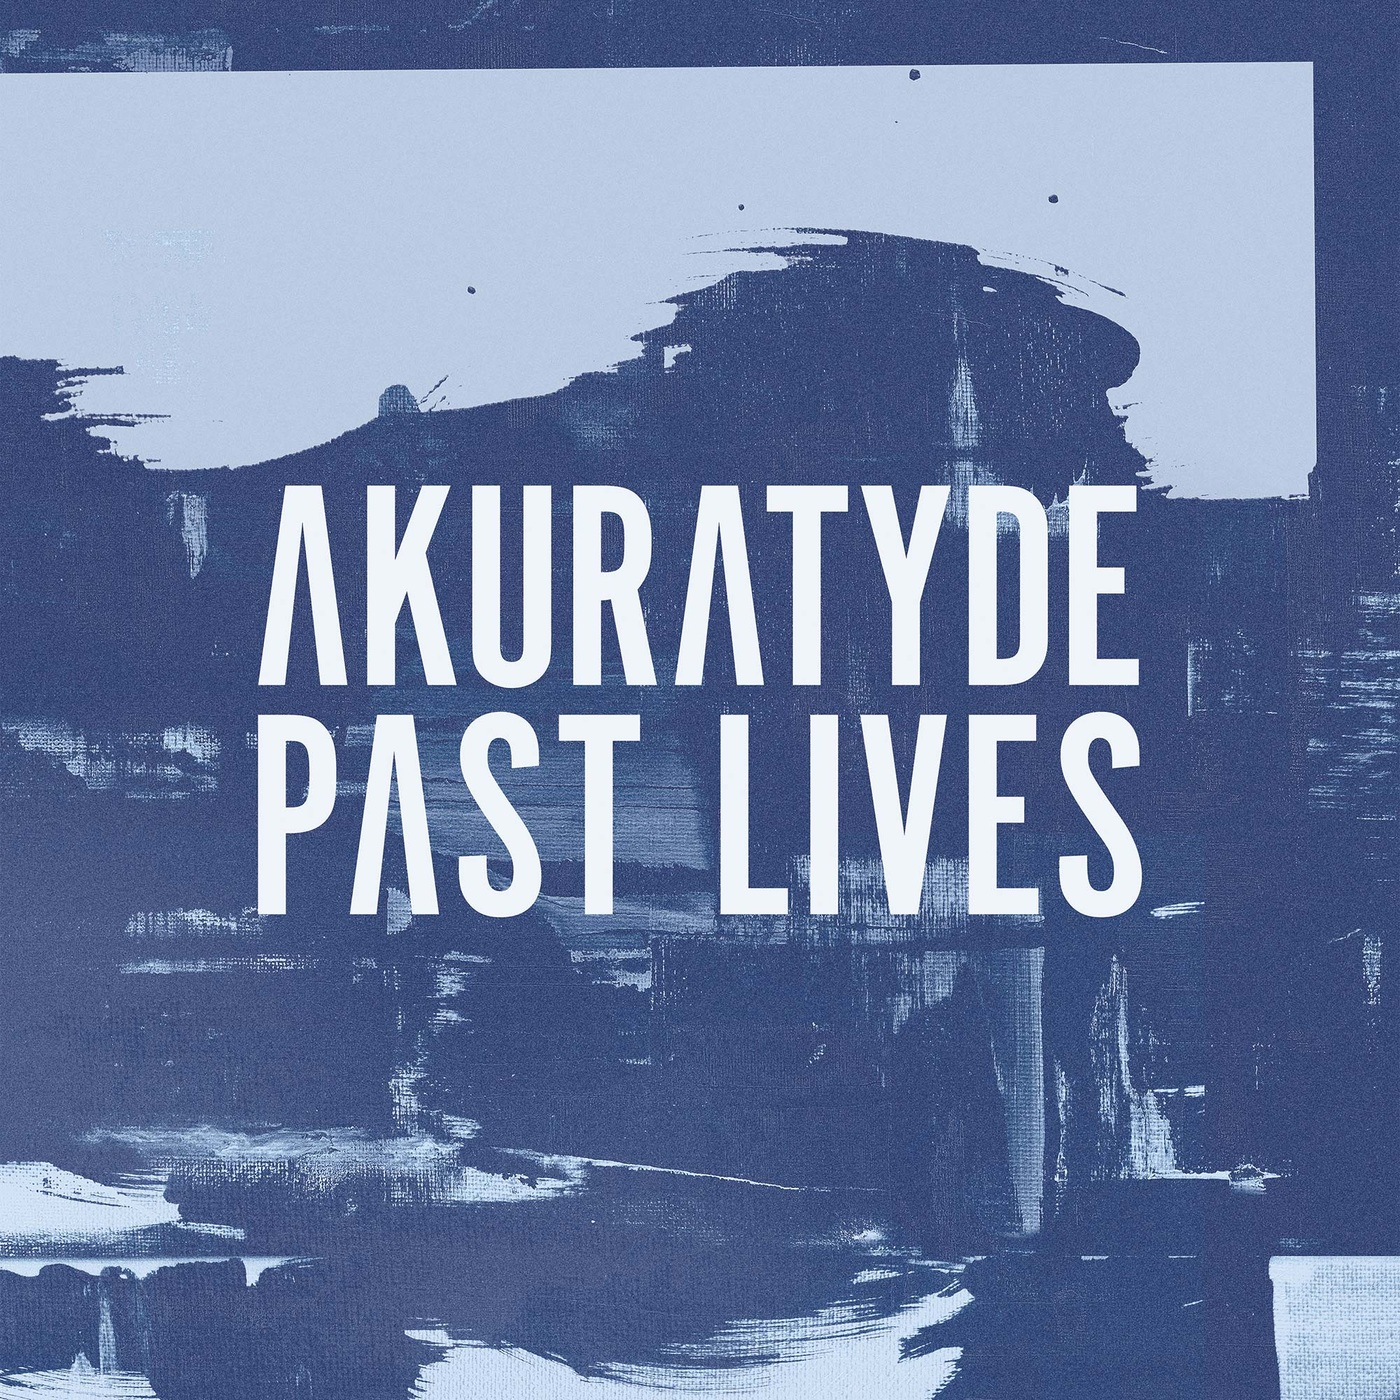 Akuratyde — Past Lives [Blu Mar Ten][BMTDDLP014](2018)